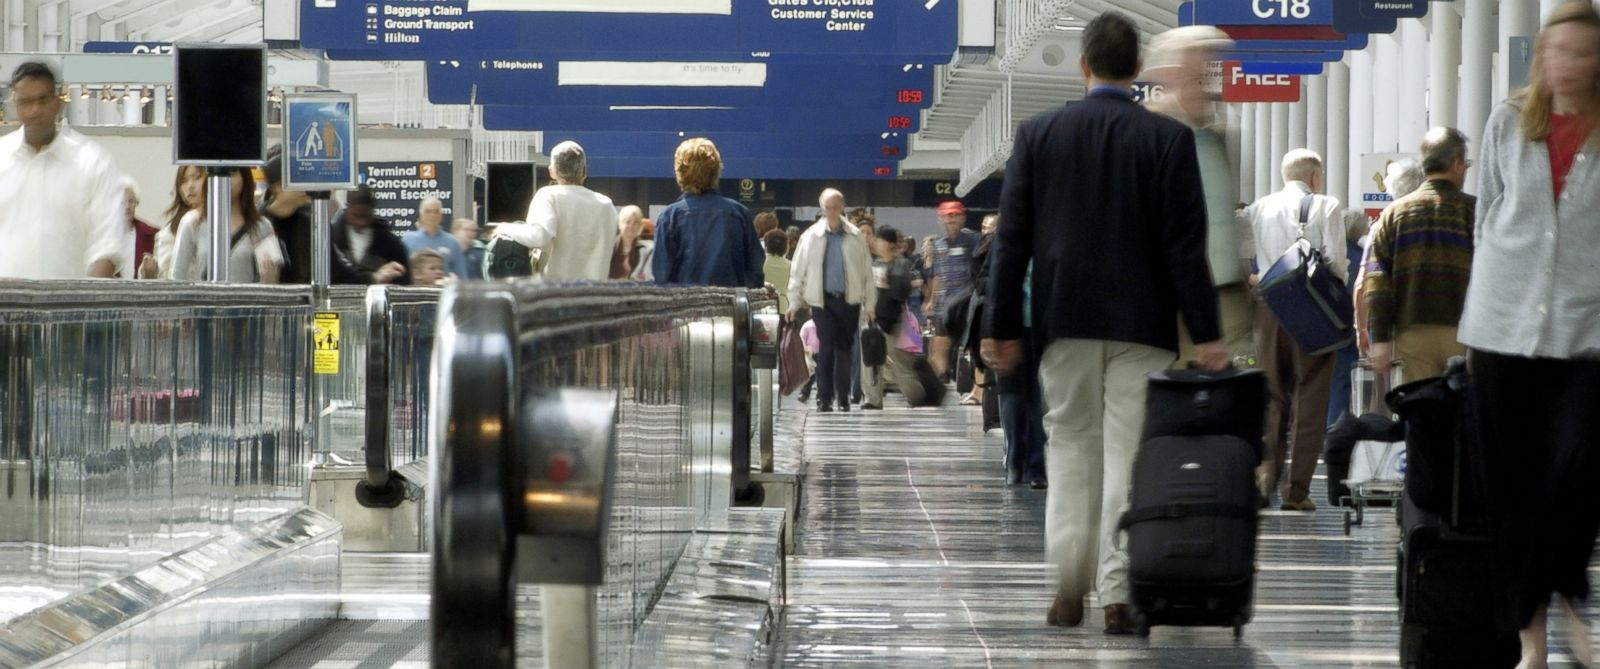 PHOTO: With more Americans vacationing than last year, airports are expecting a very busy summer